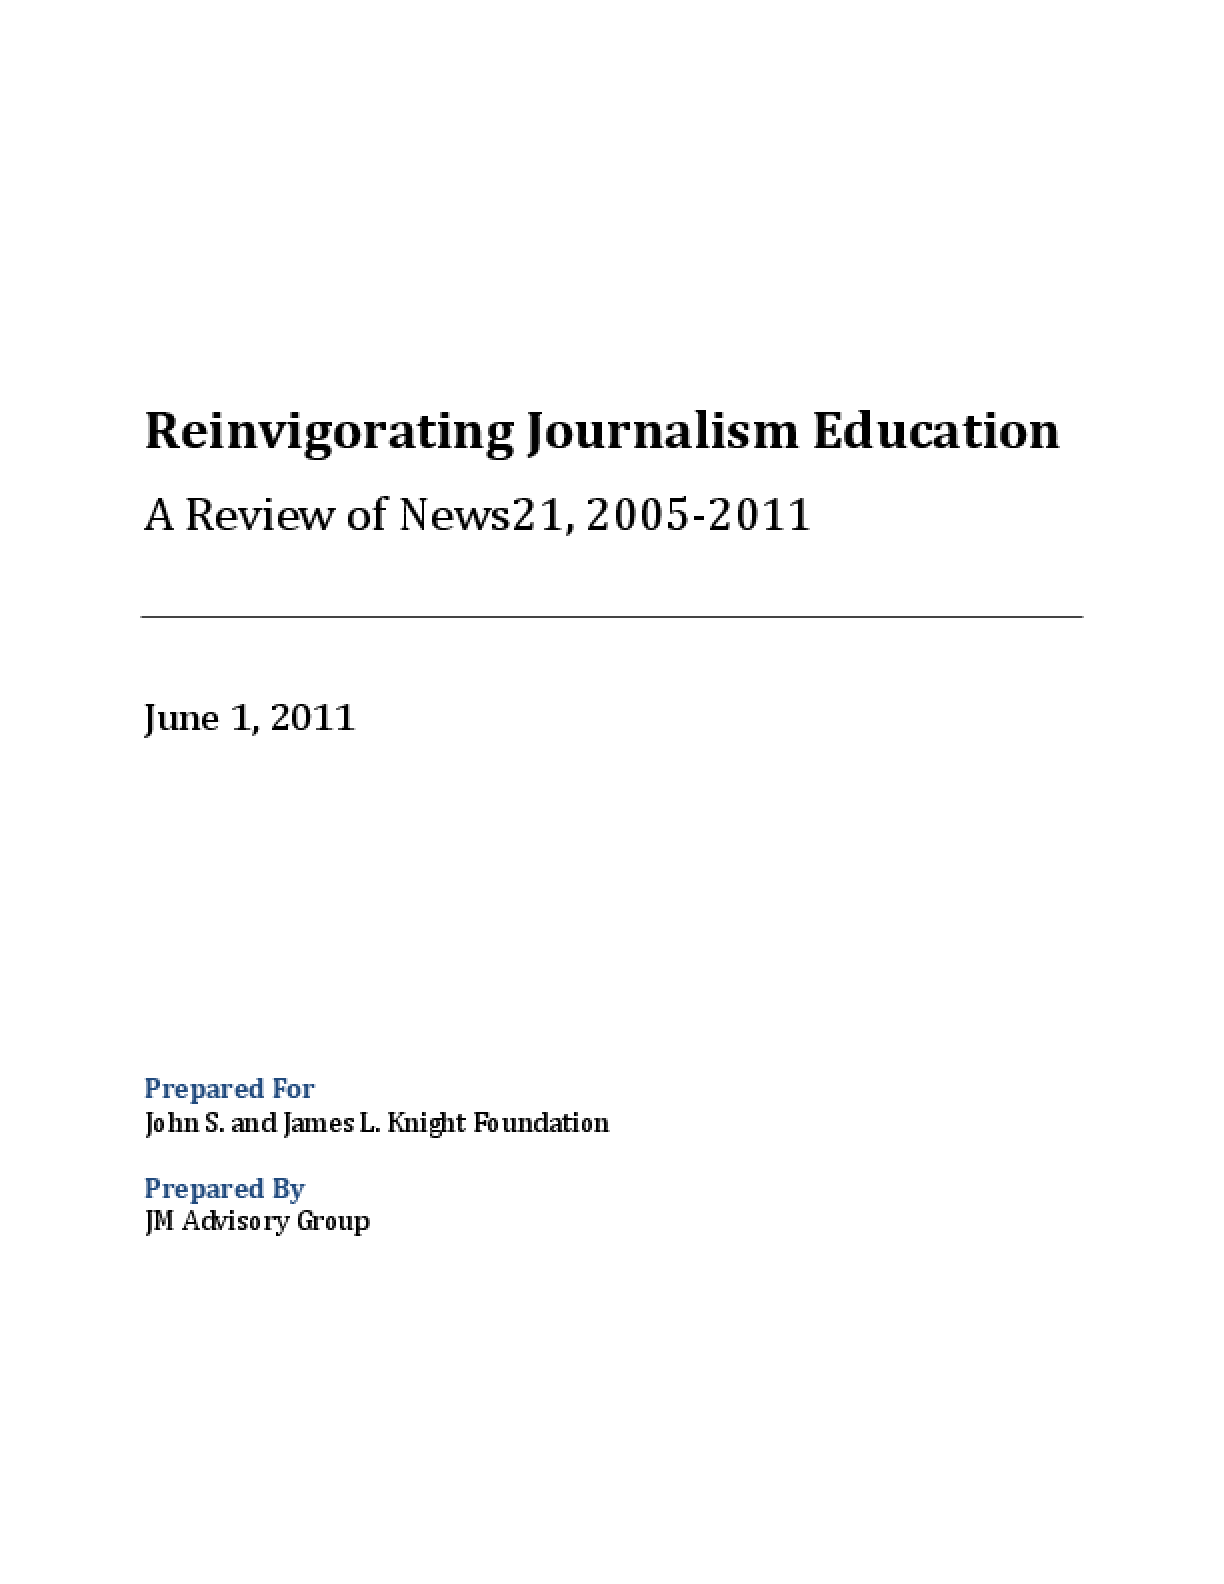 Reinvigorating Journalism Education: A Review of News21, 2005-2011